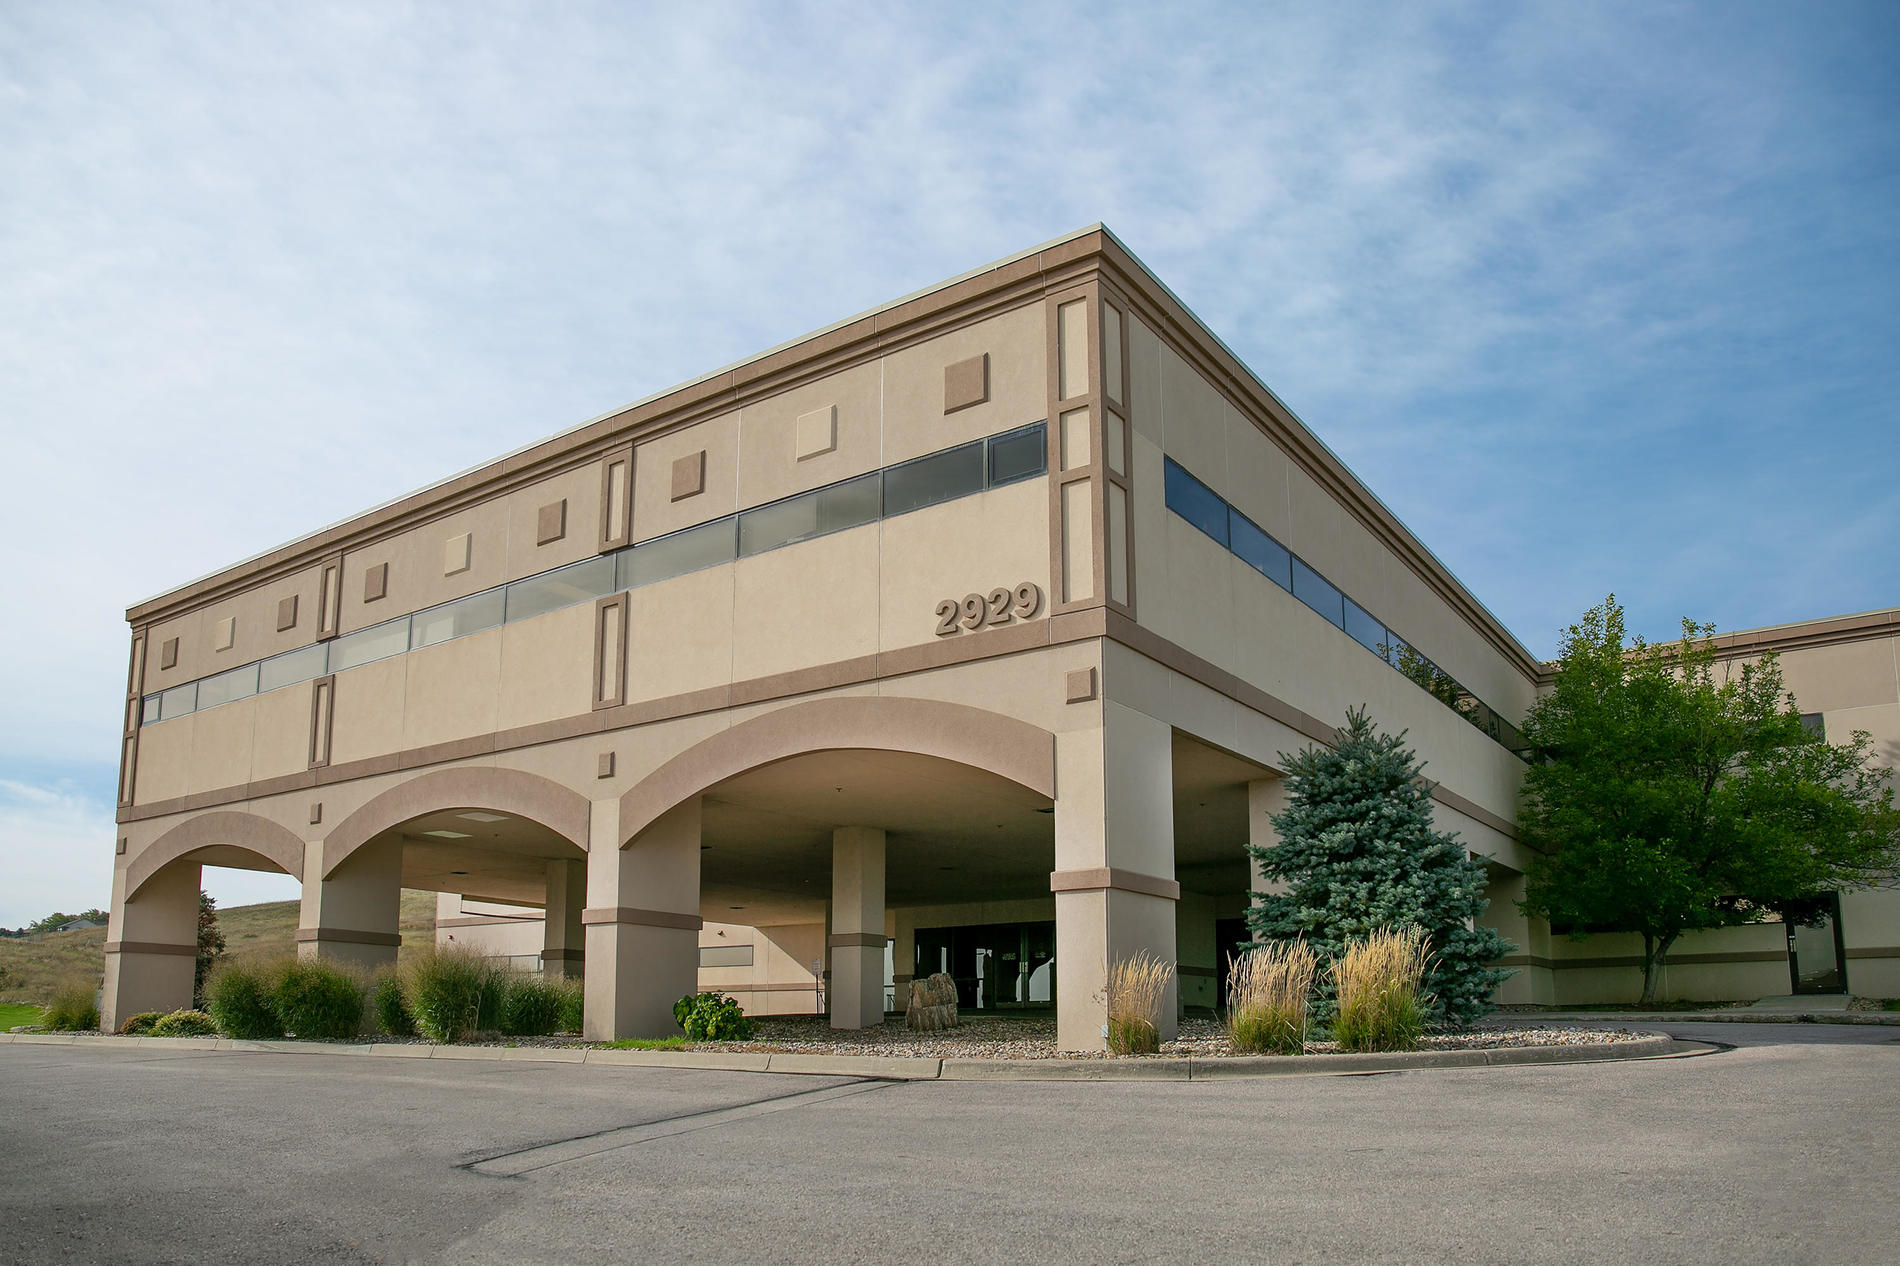 Photo of Regional Health Neurology and Rehabilitation Rapid City